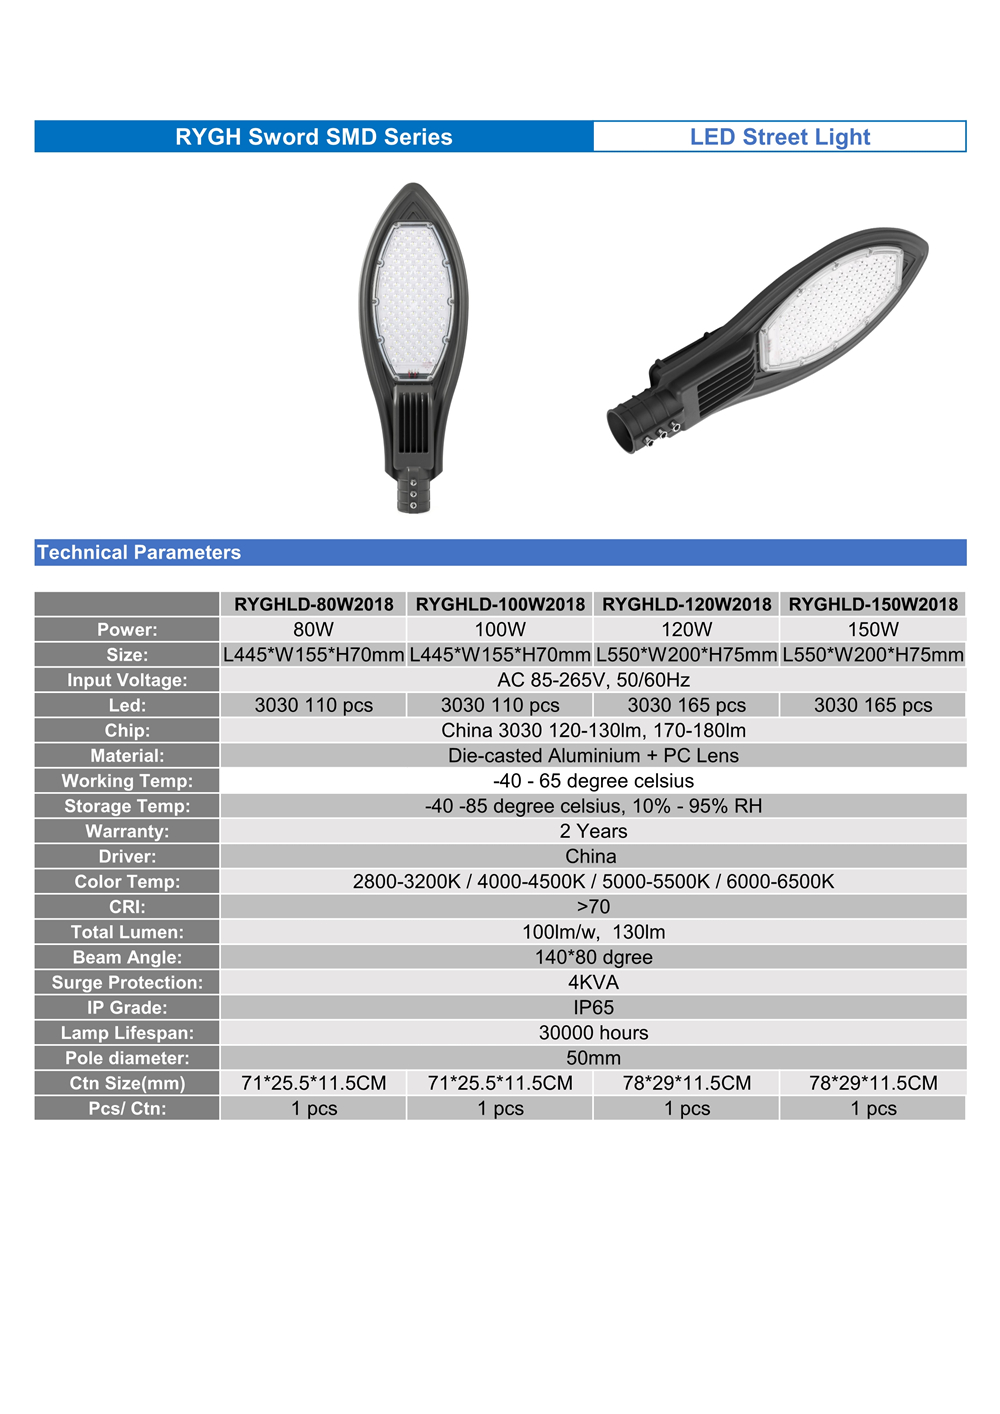 Sword SMD LED Street Light